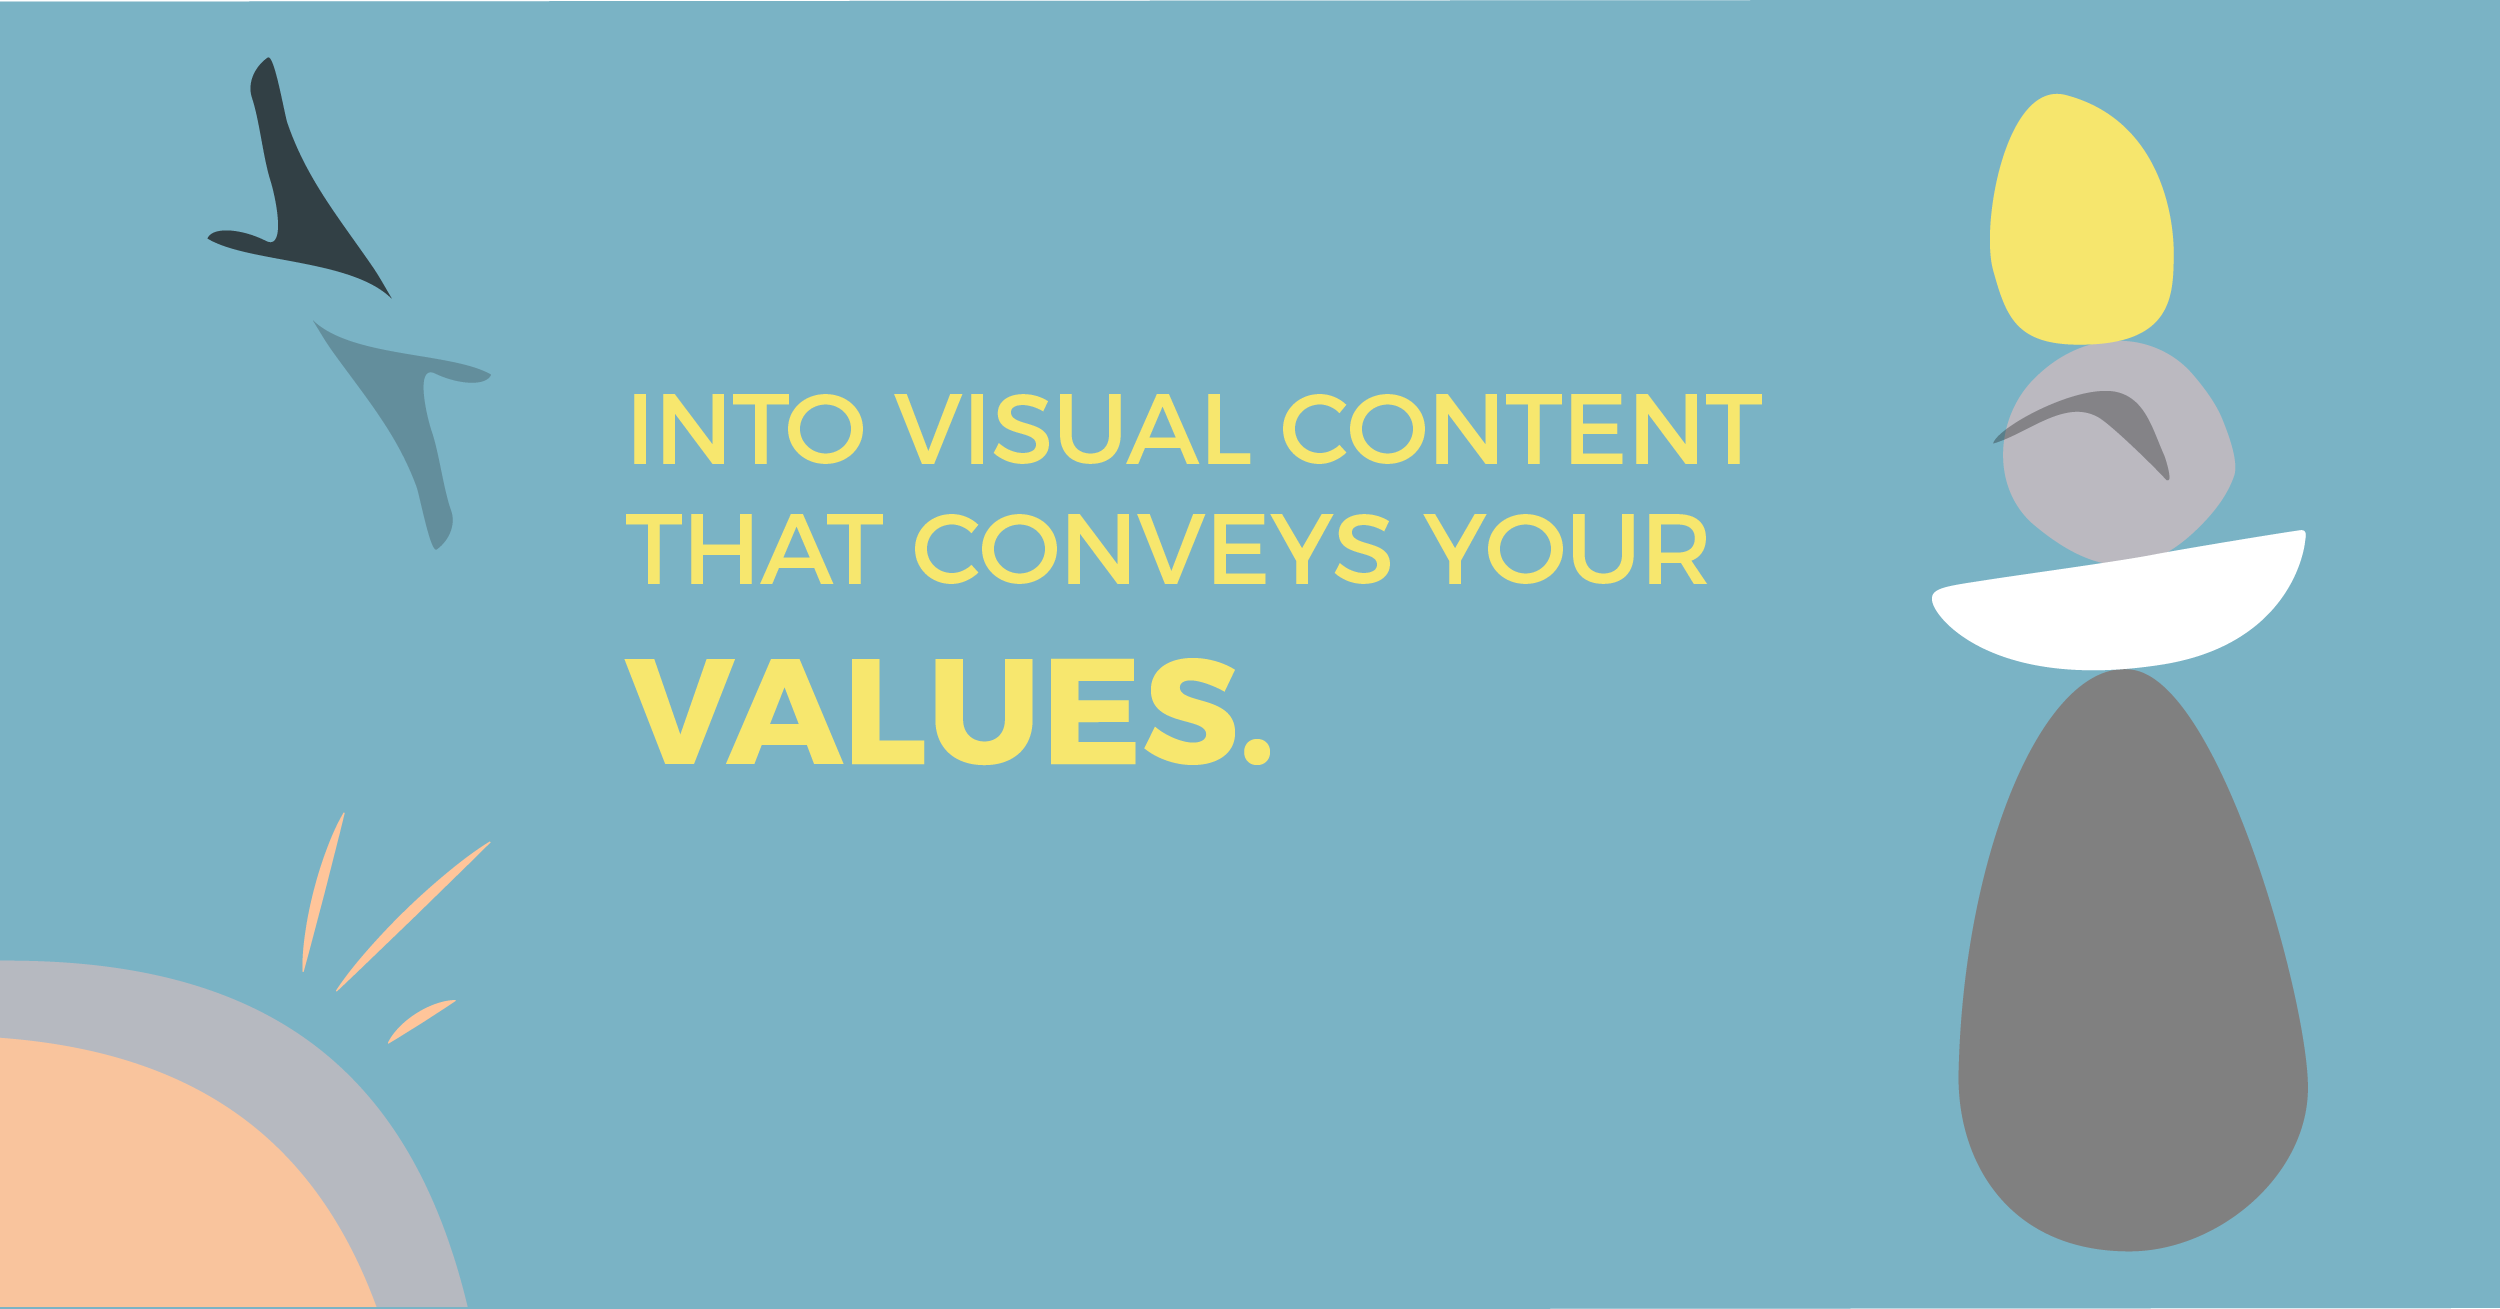 Visual content that conveys your values